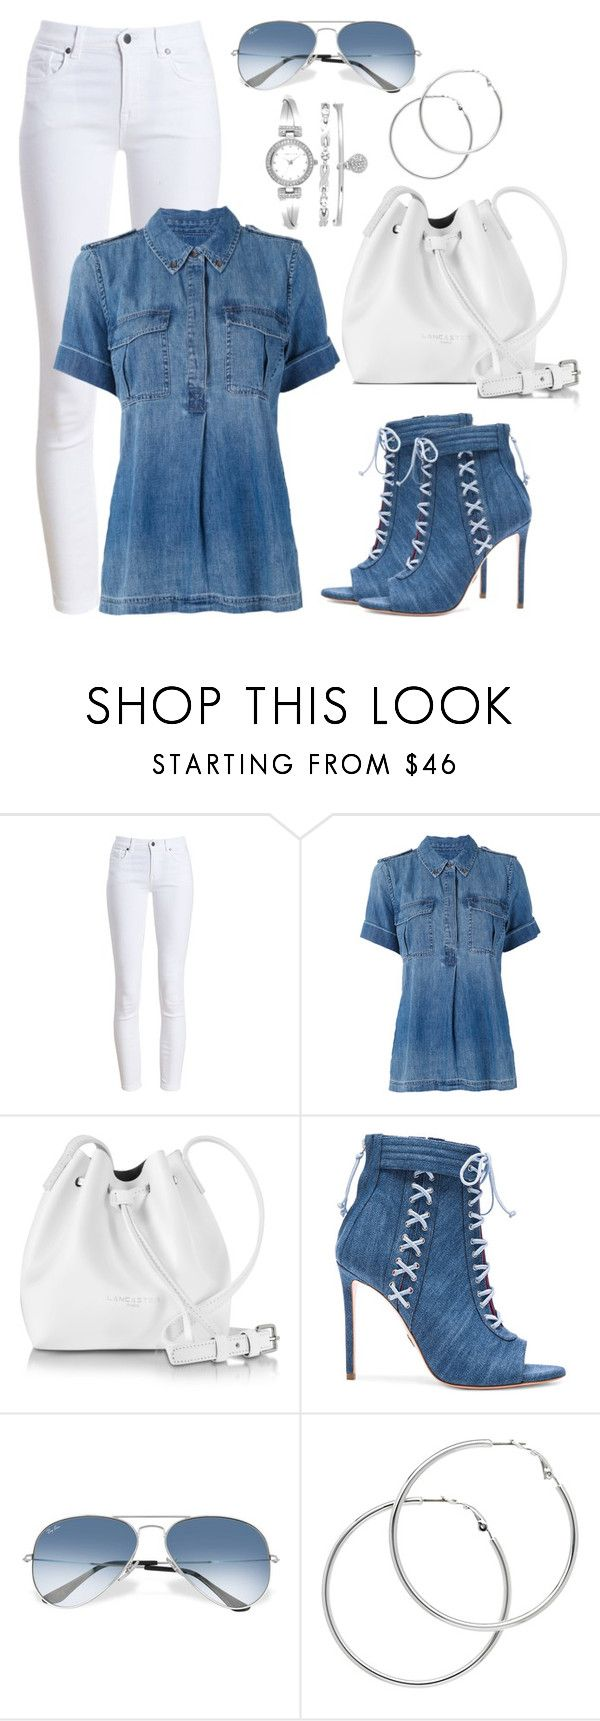 """""""Untitled #1435"""" by gallant81 ❤ liked on Polyvore featuring Barbour, Equipment, Lancaster, Oscar Tiye, Ray-Ban, Melissa Odabash and Anne Klein"""